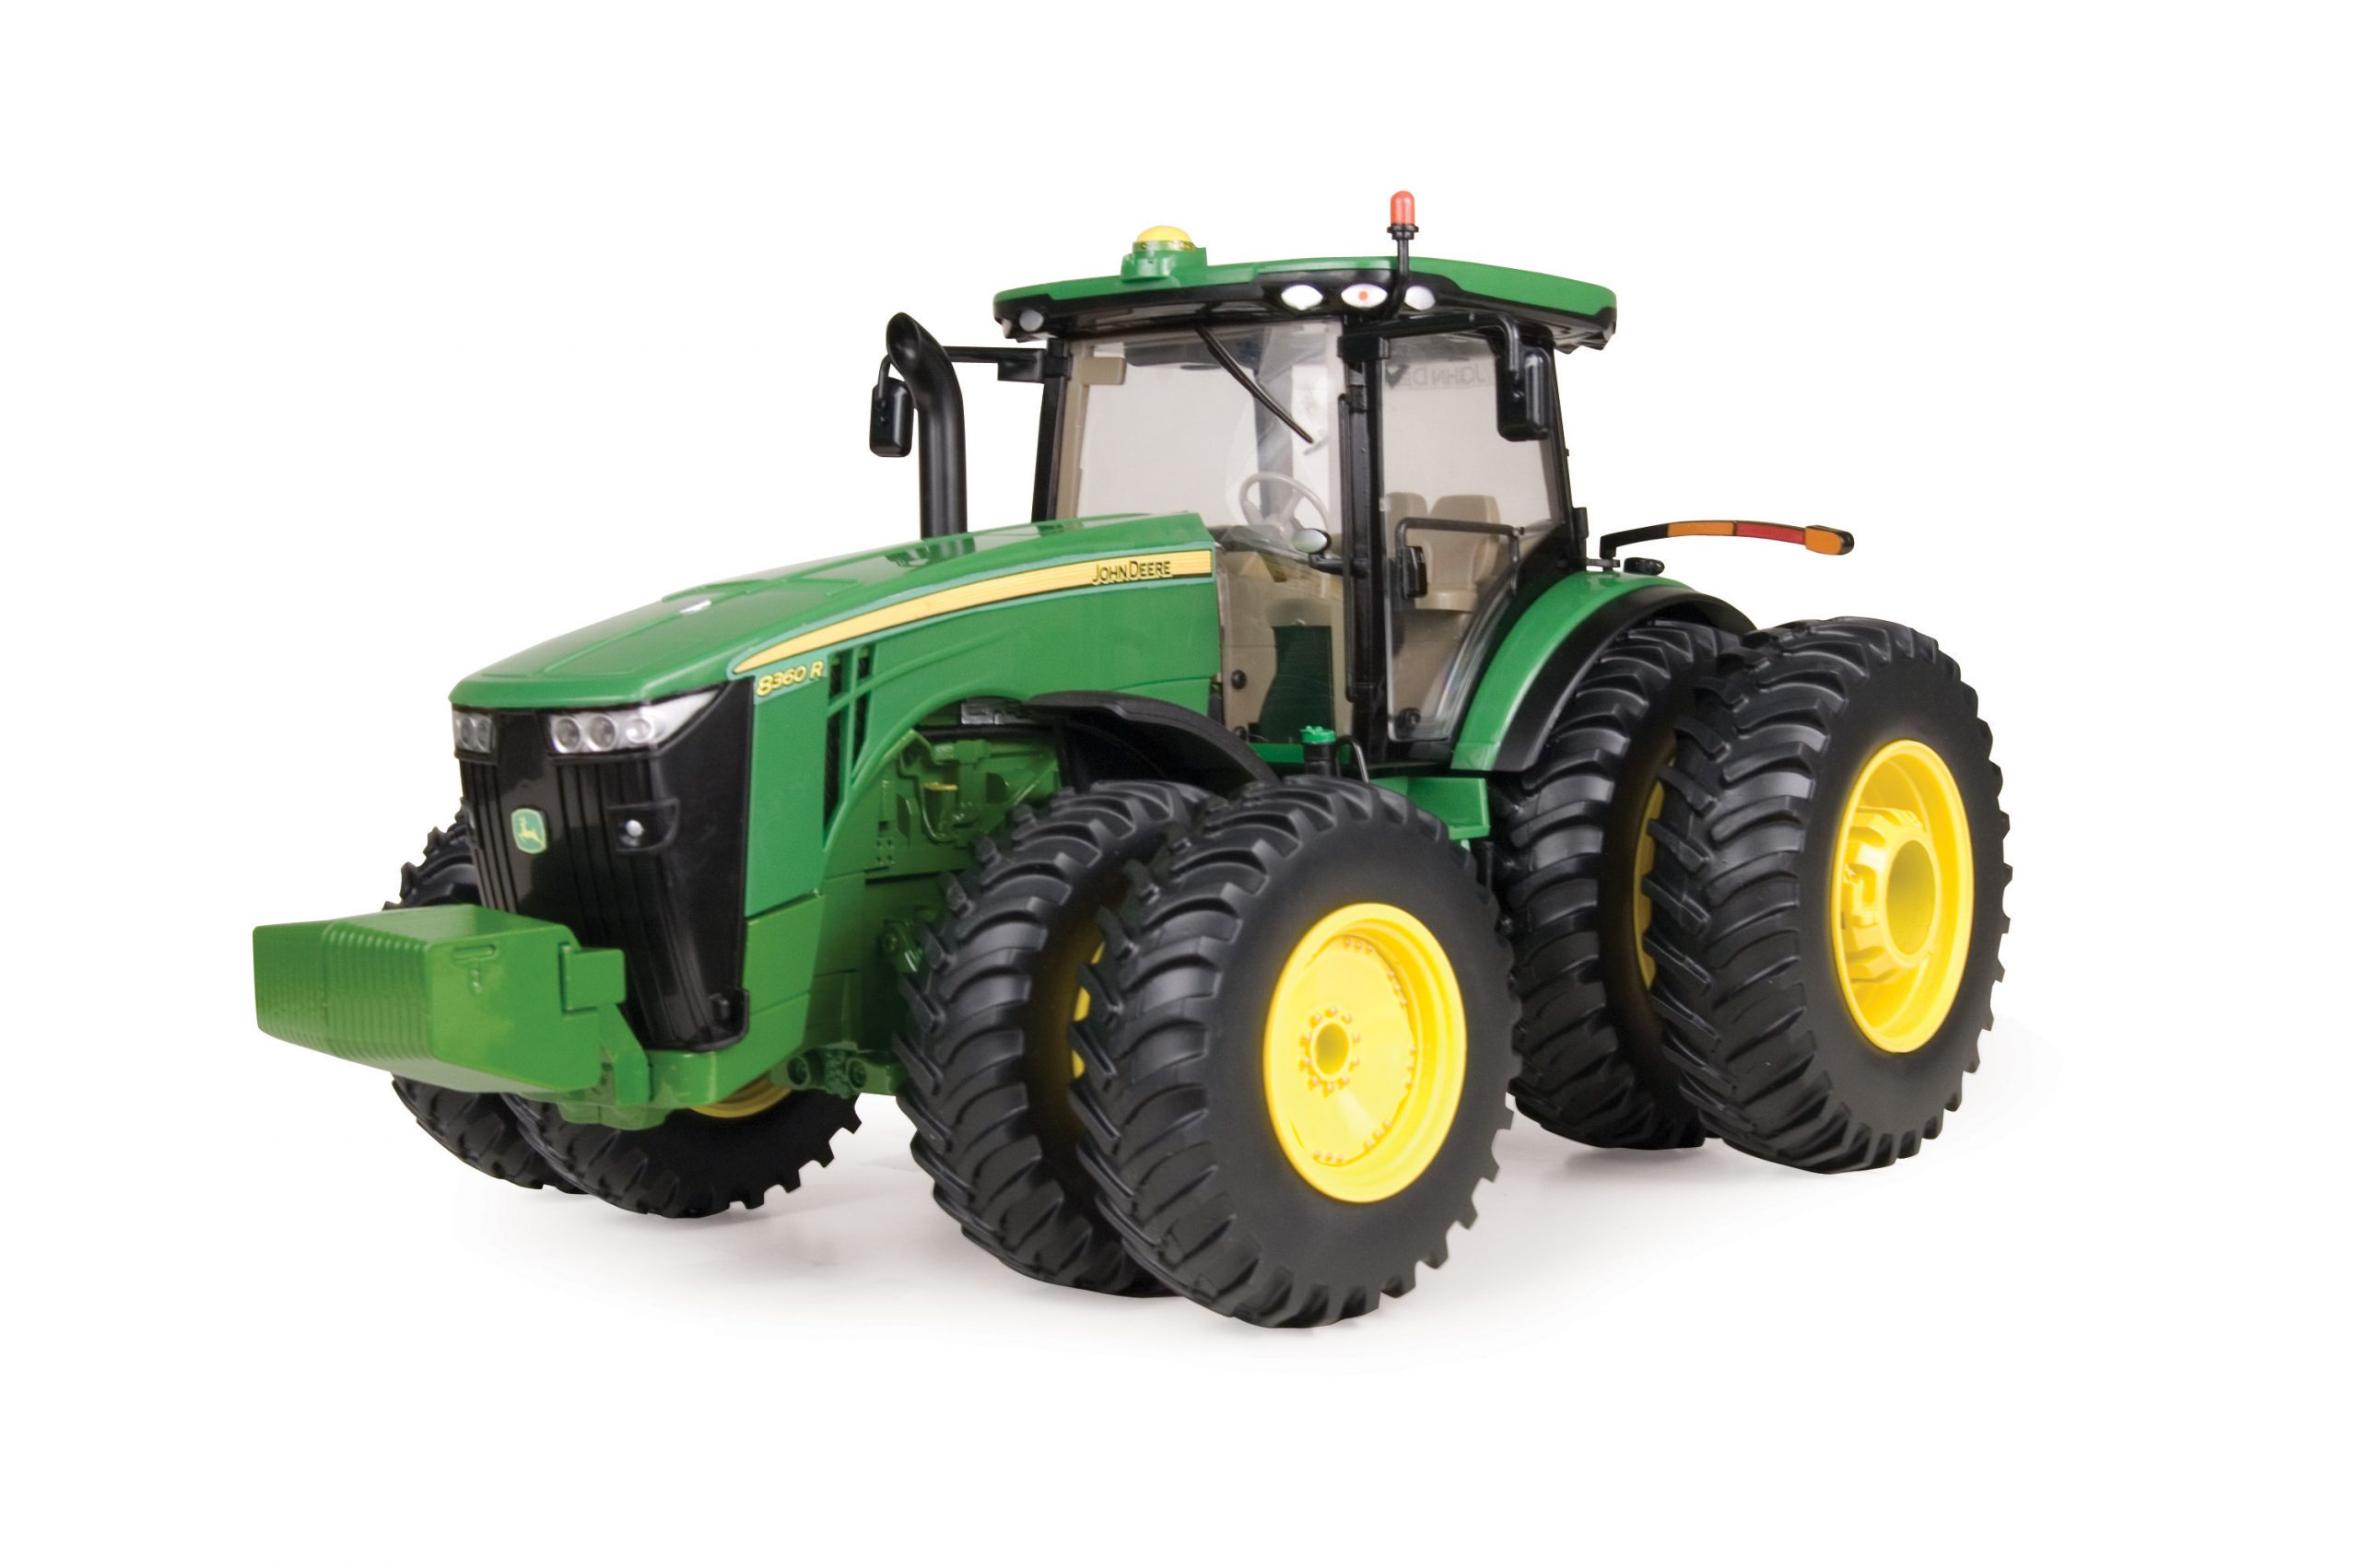 john deere tractor essay Explore john deere series of affordable, versatile, reliable and easy to use utility tractors for all of your work needs.